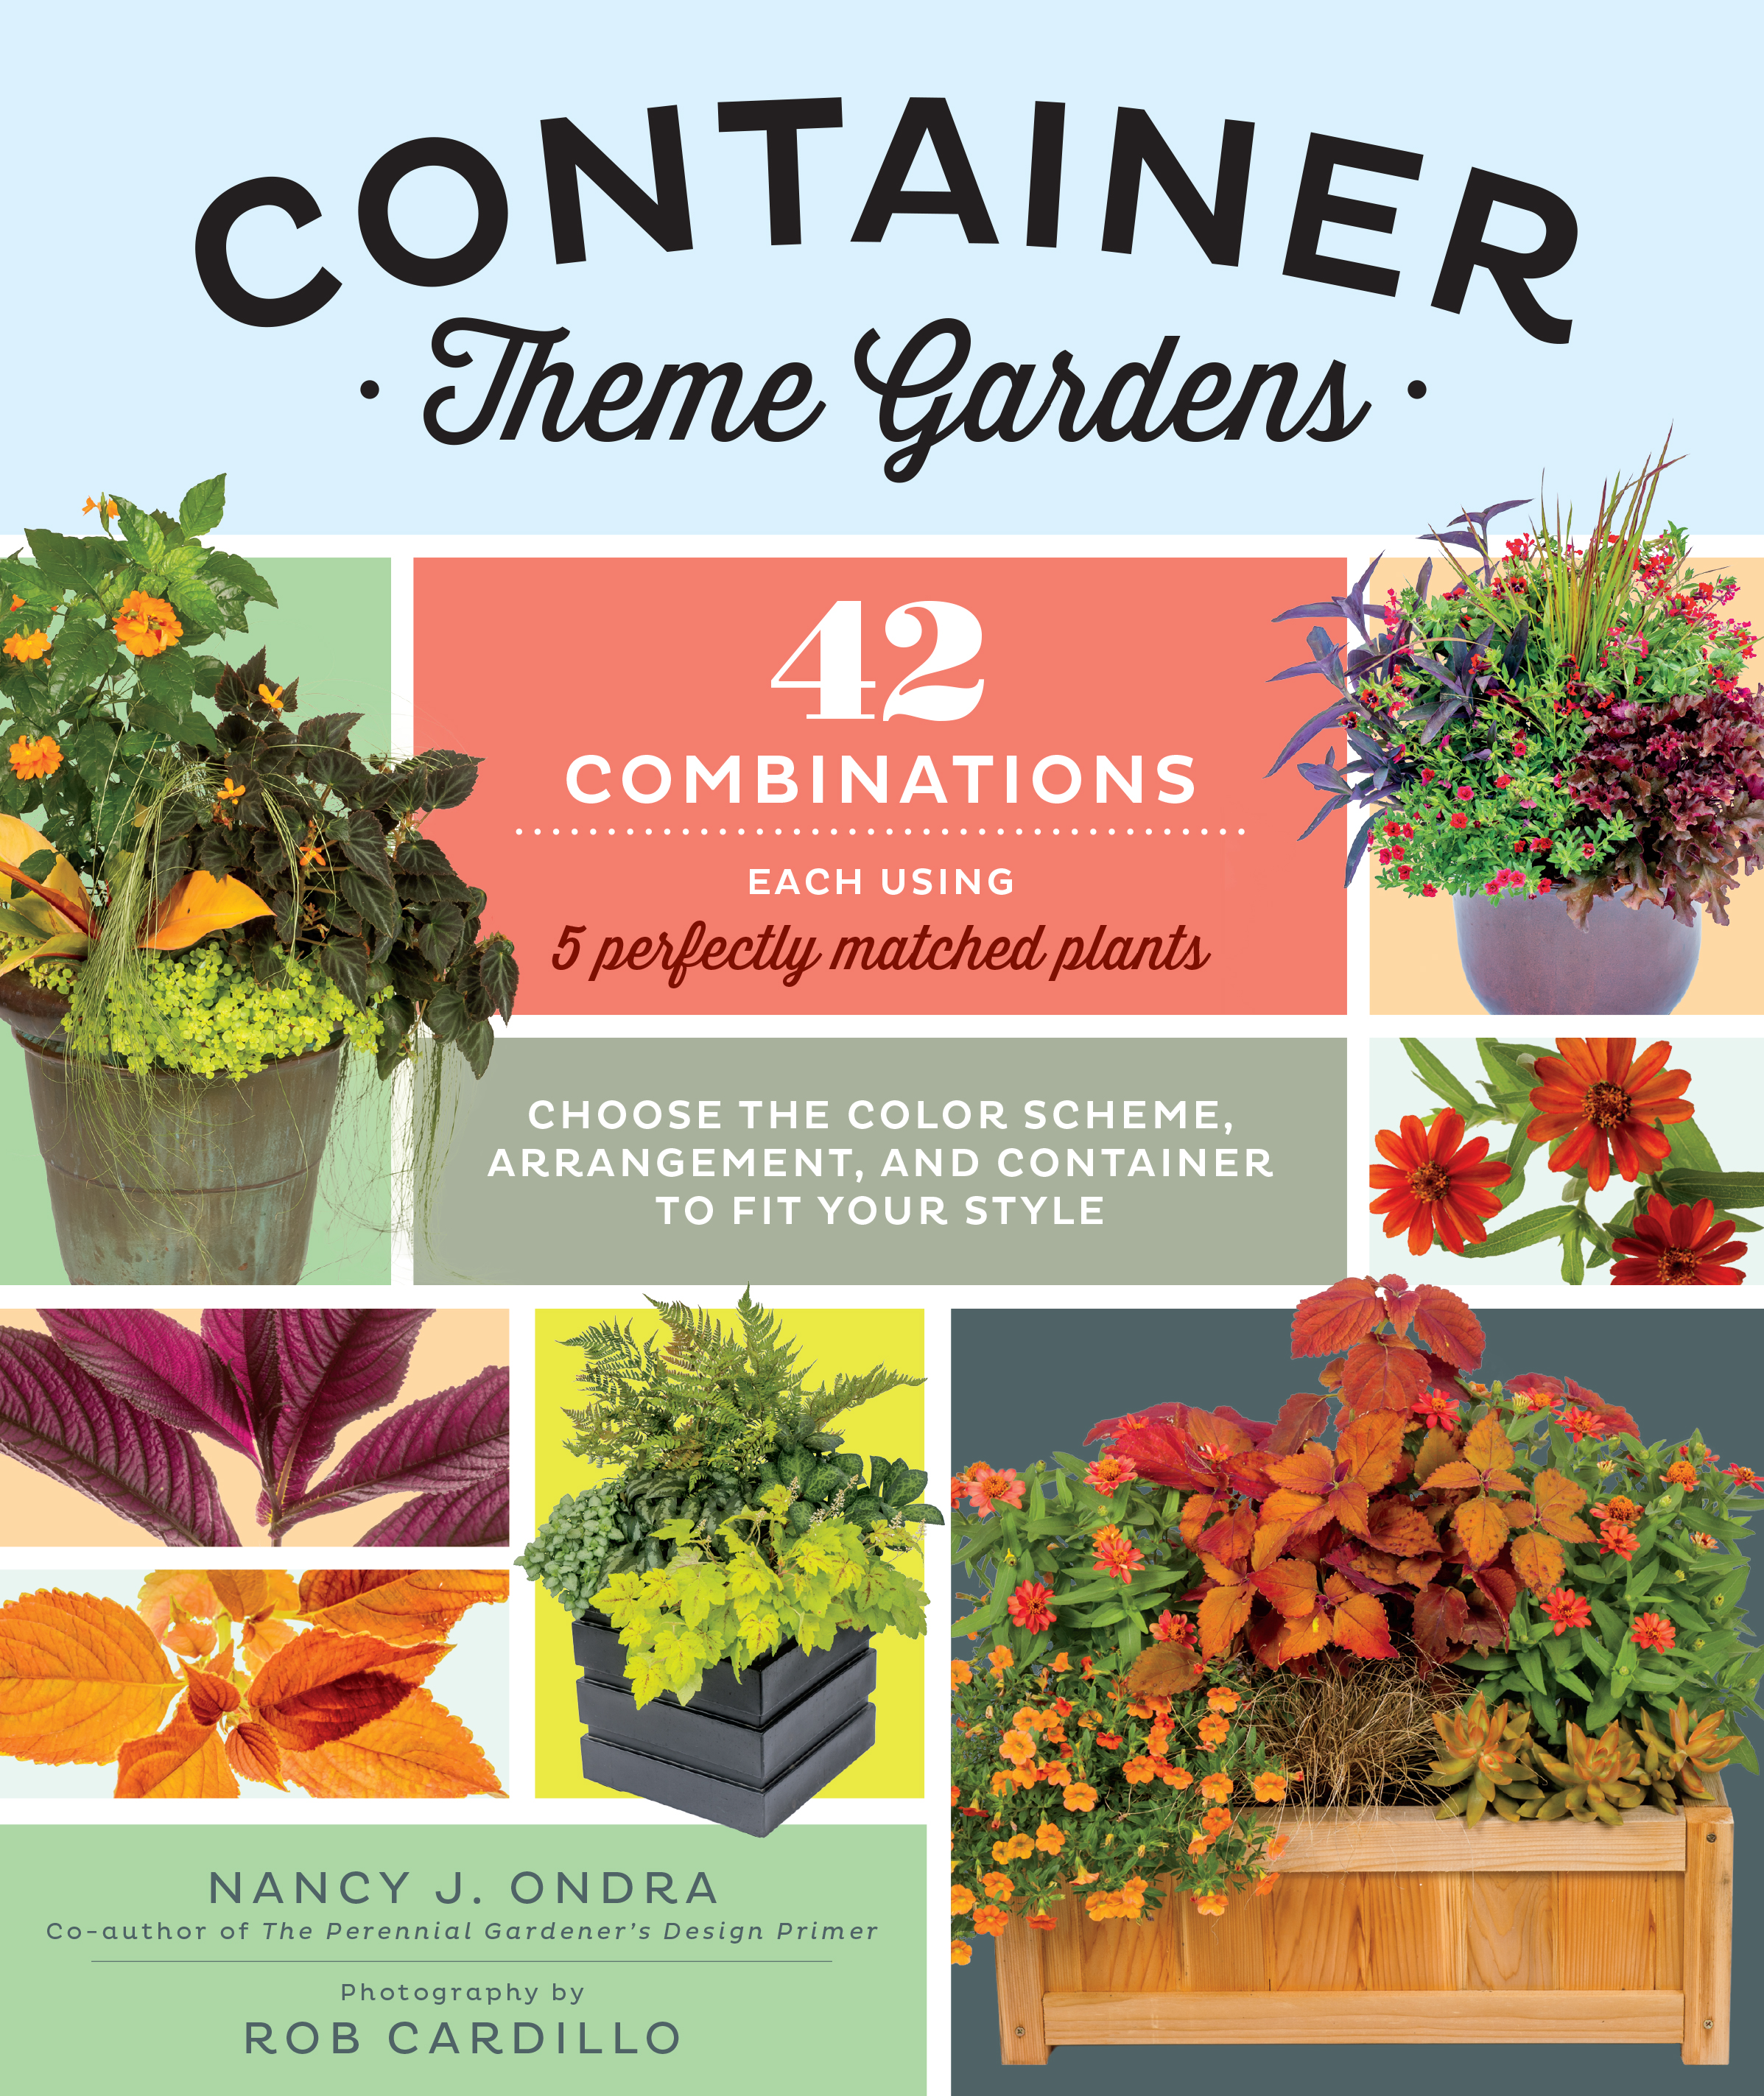 Container Theme Gardens 42 Combinations, Each Using 5 Perfectly Matched Plants - Nancy J. Ondra